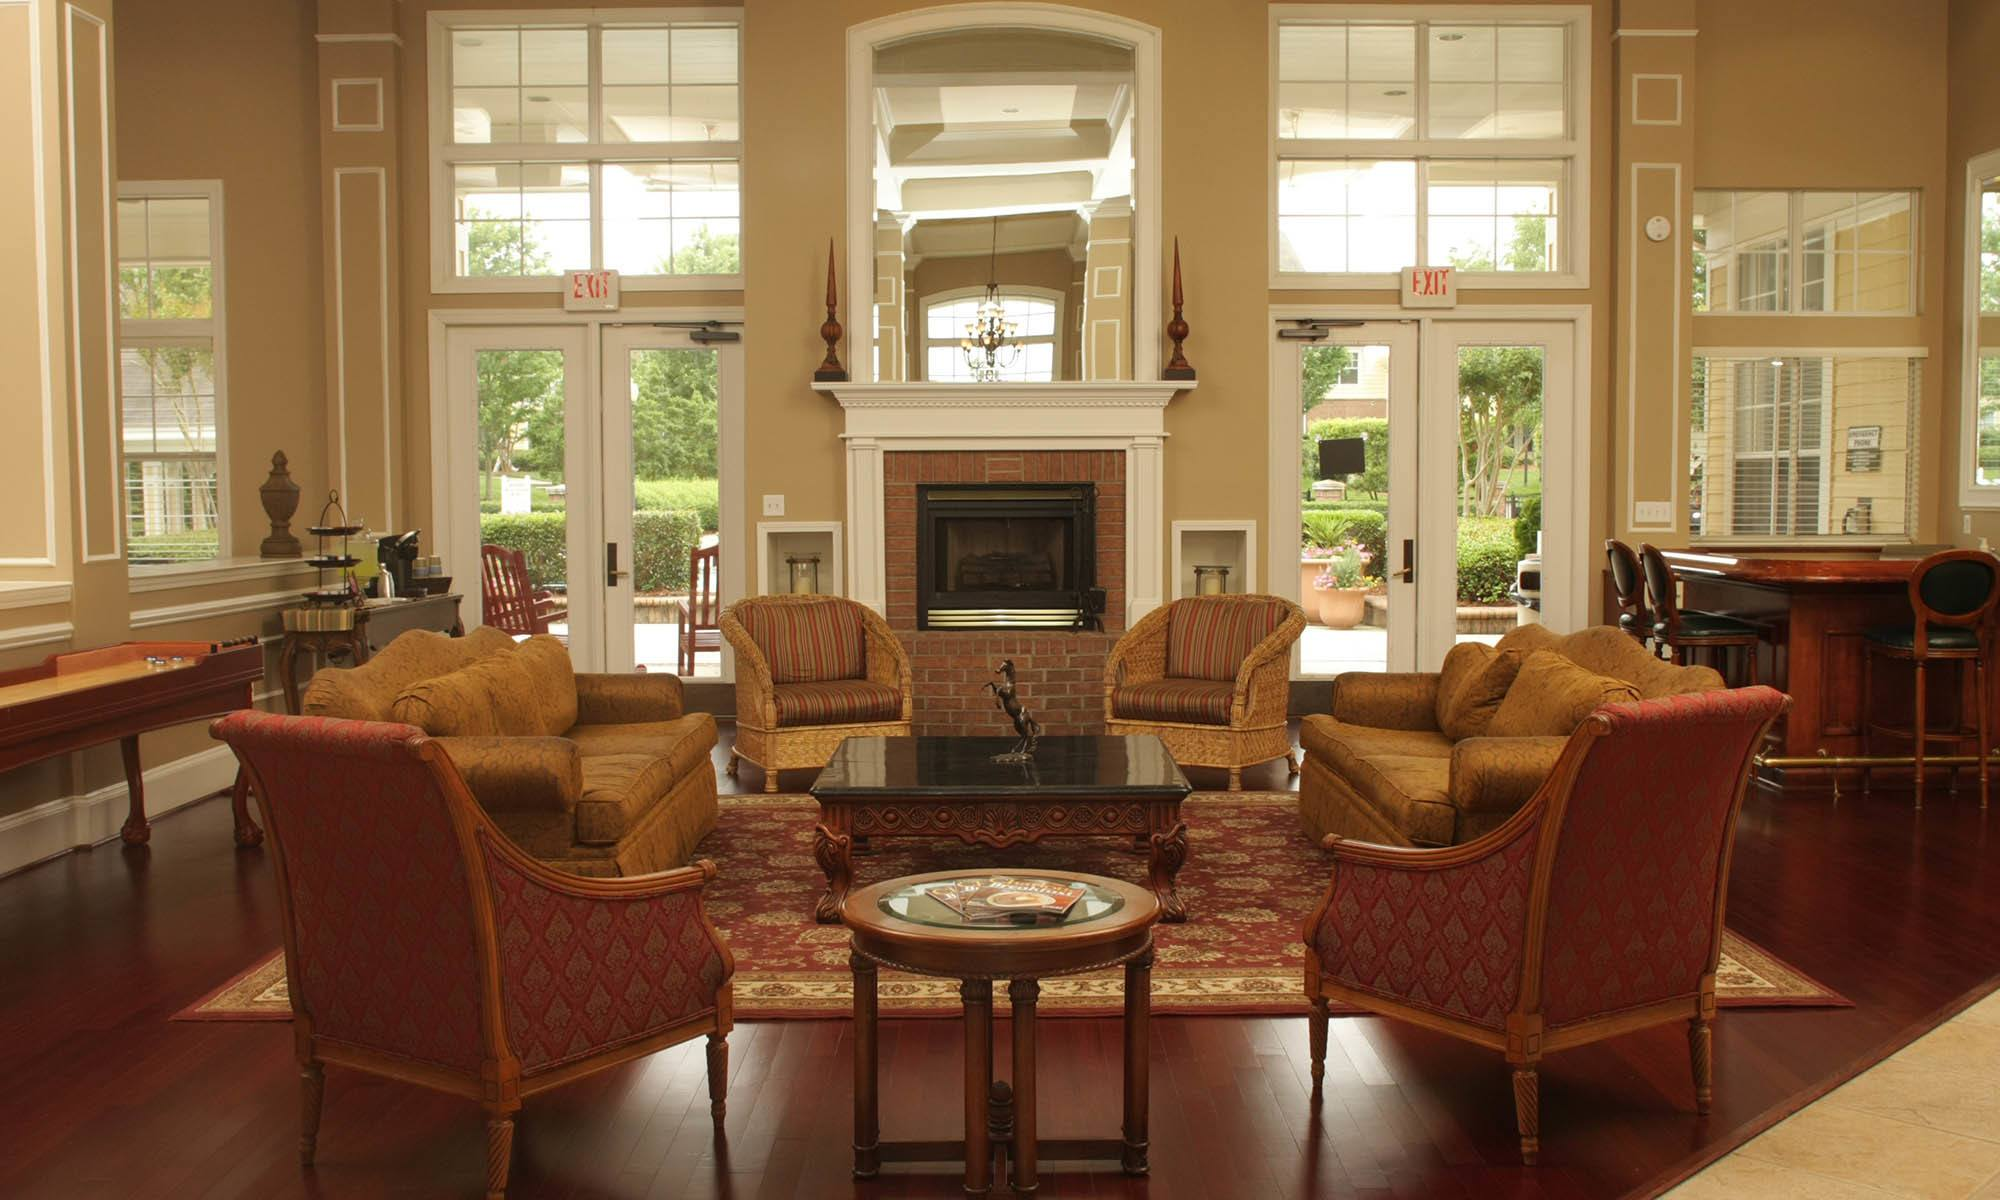 Apartments For Rent In South Charlotte Nc The Preserve At Ballantyne Commons